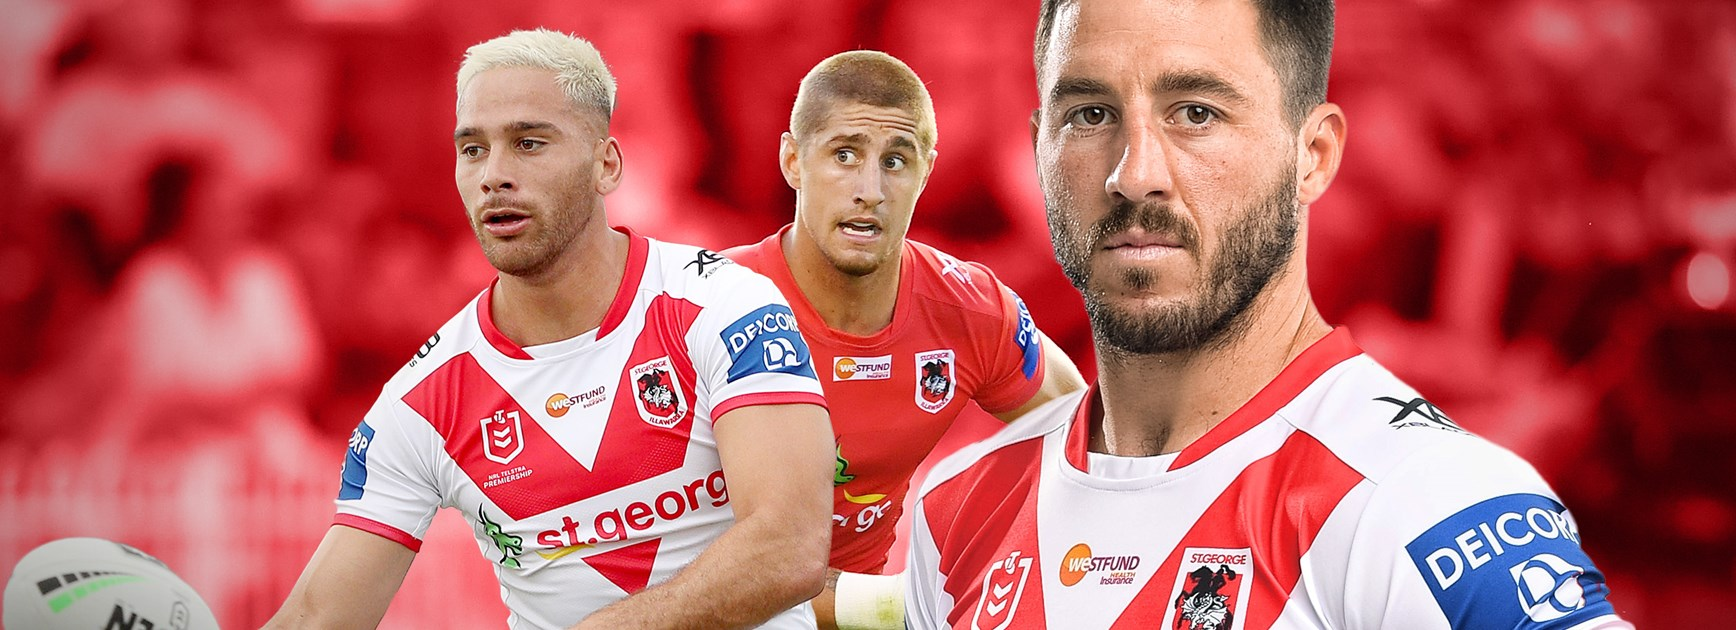 Ben Hunt writes ... New year, new team, new rules - bring it on